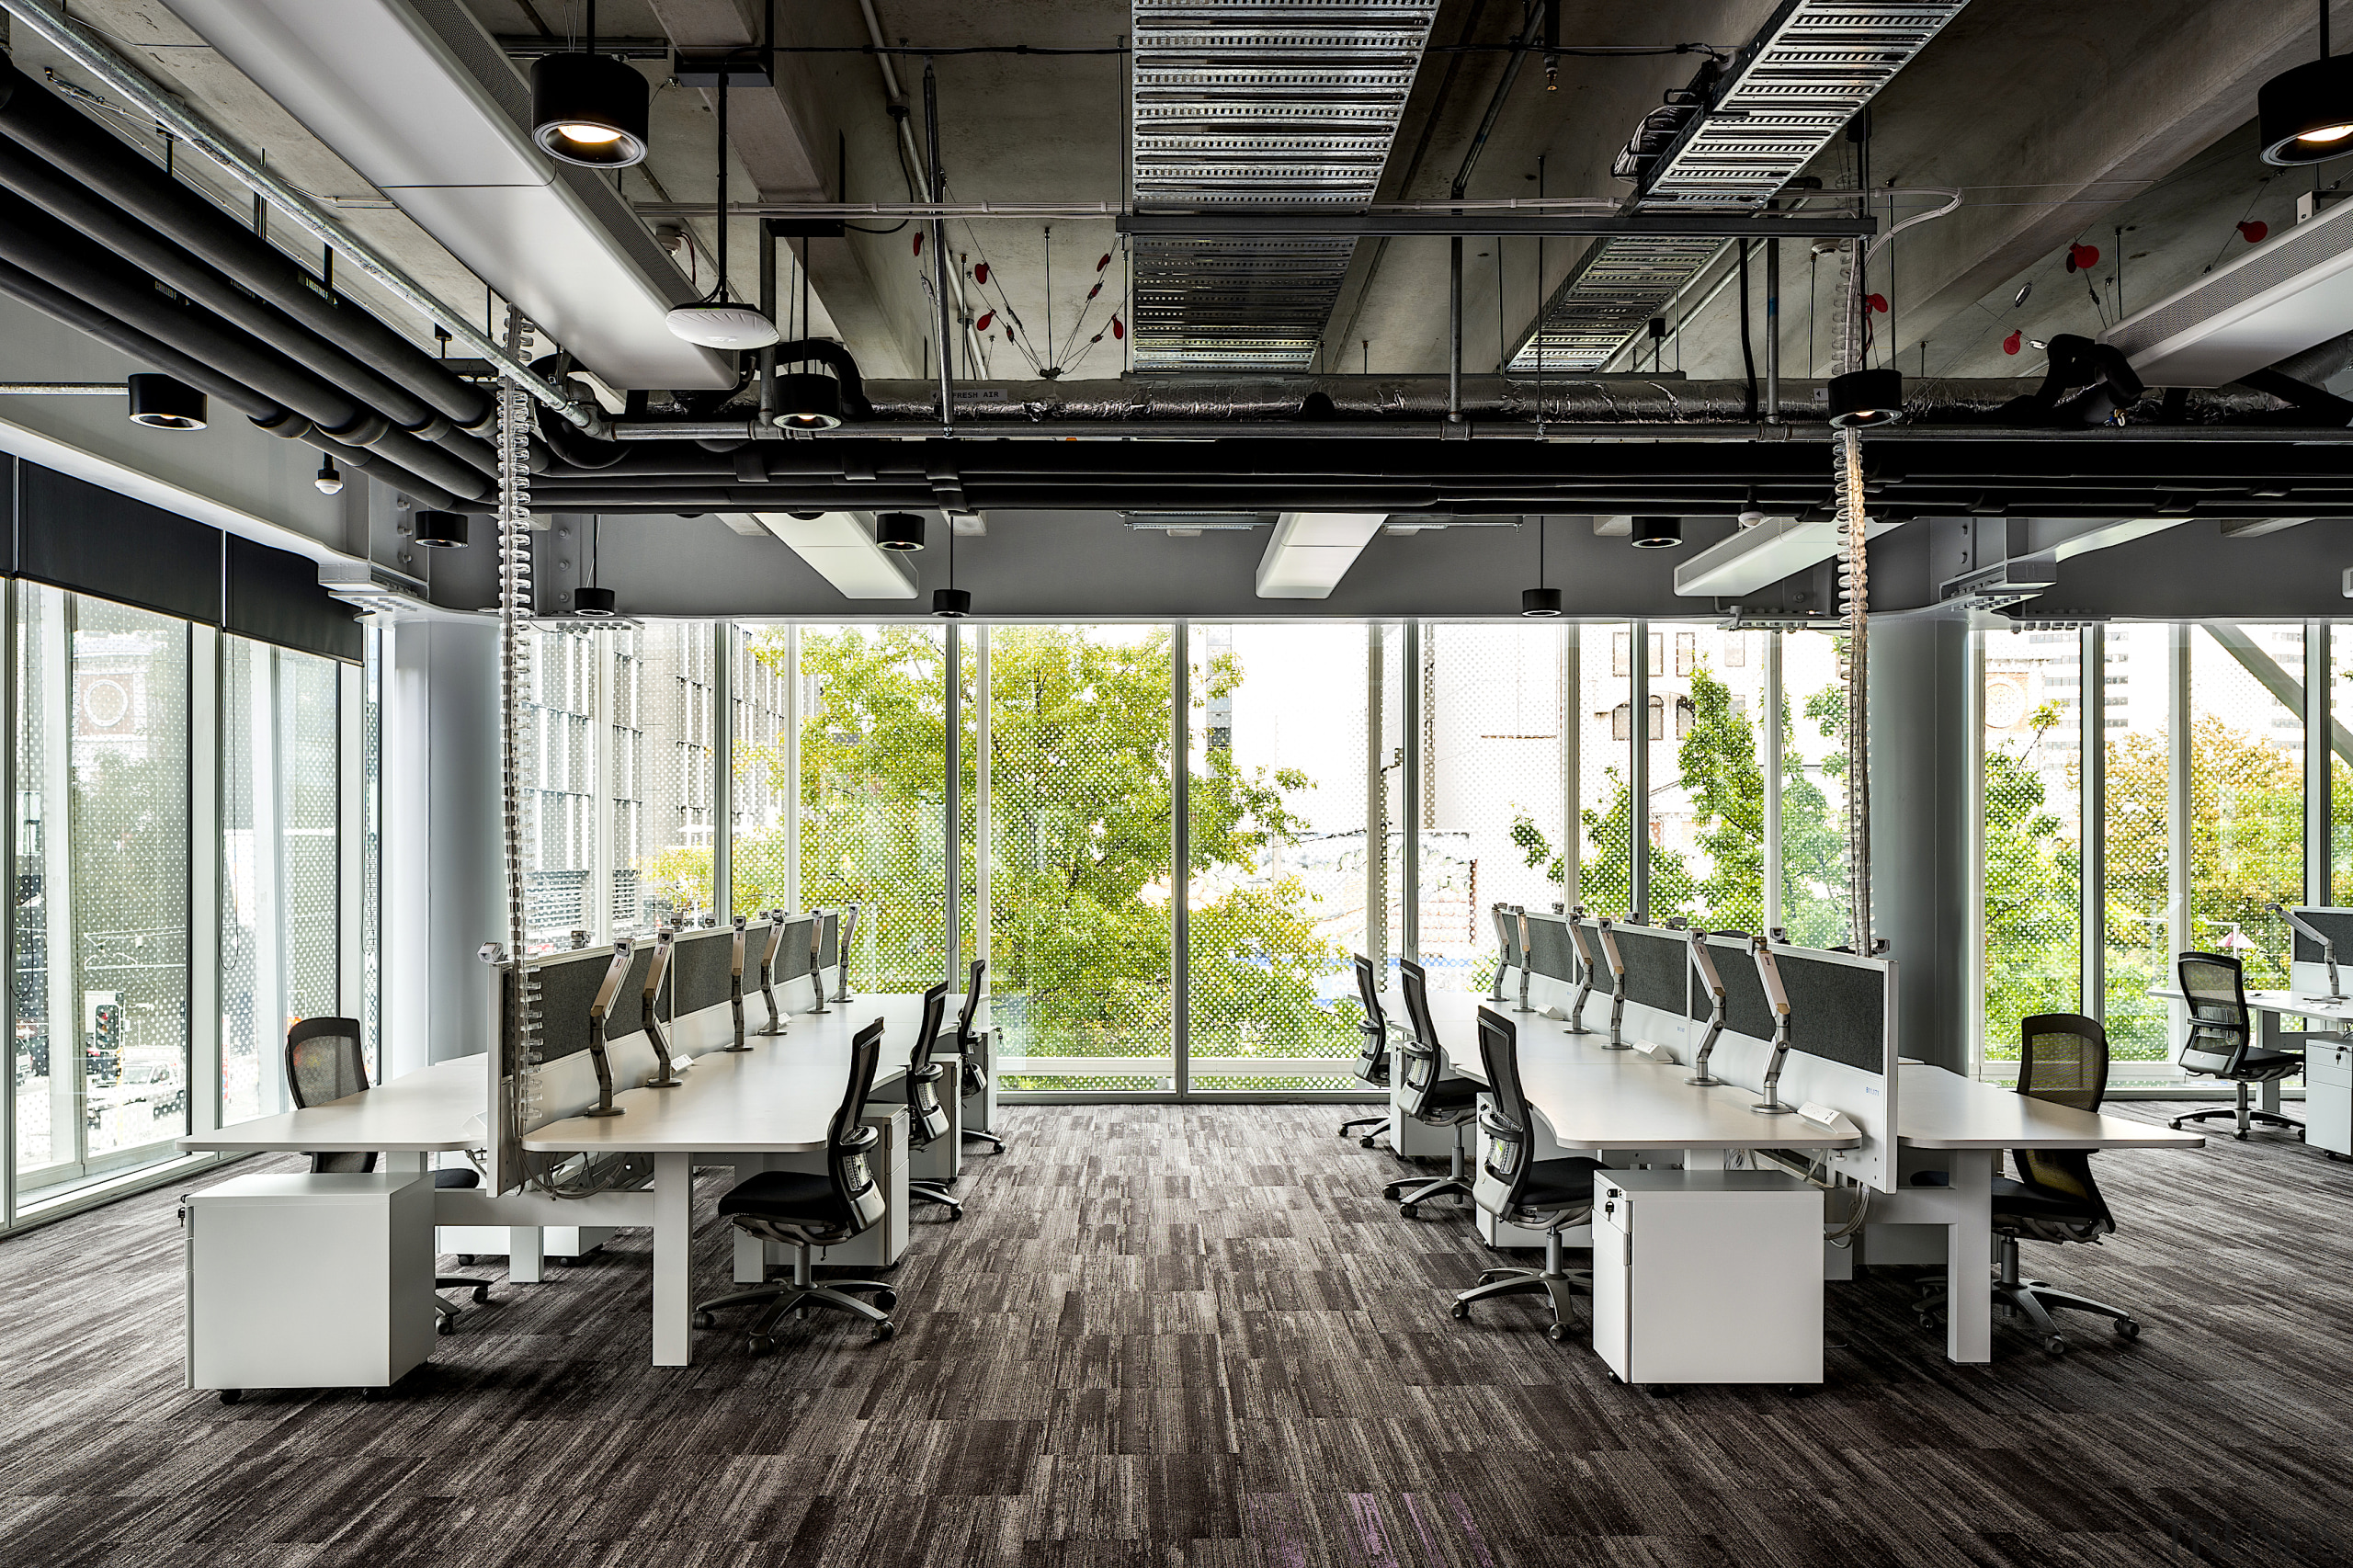 A typical office setting within the Spark building's